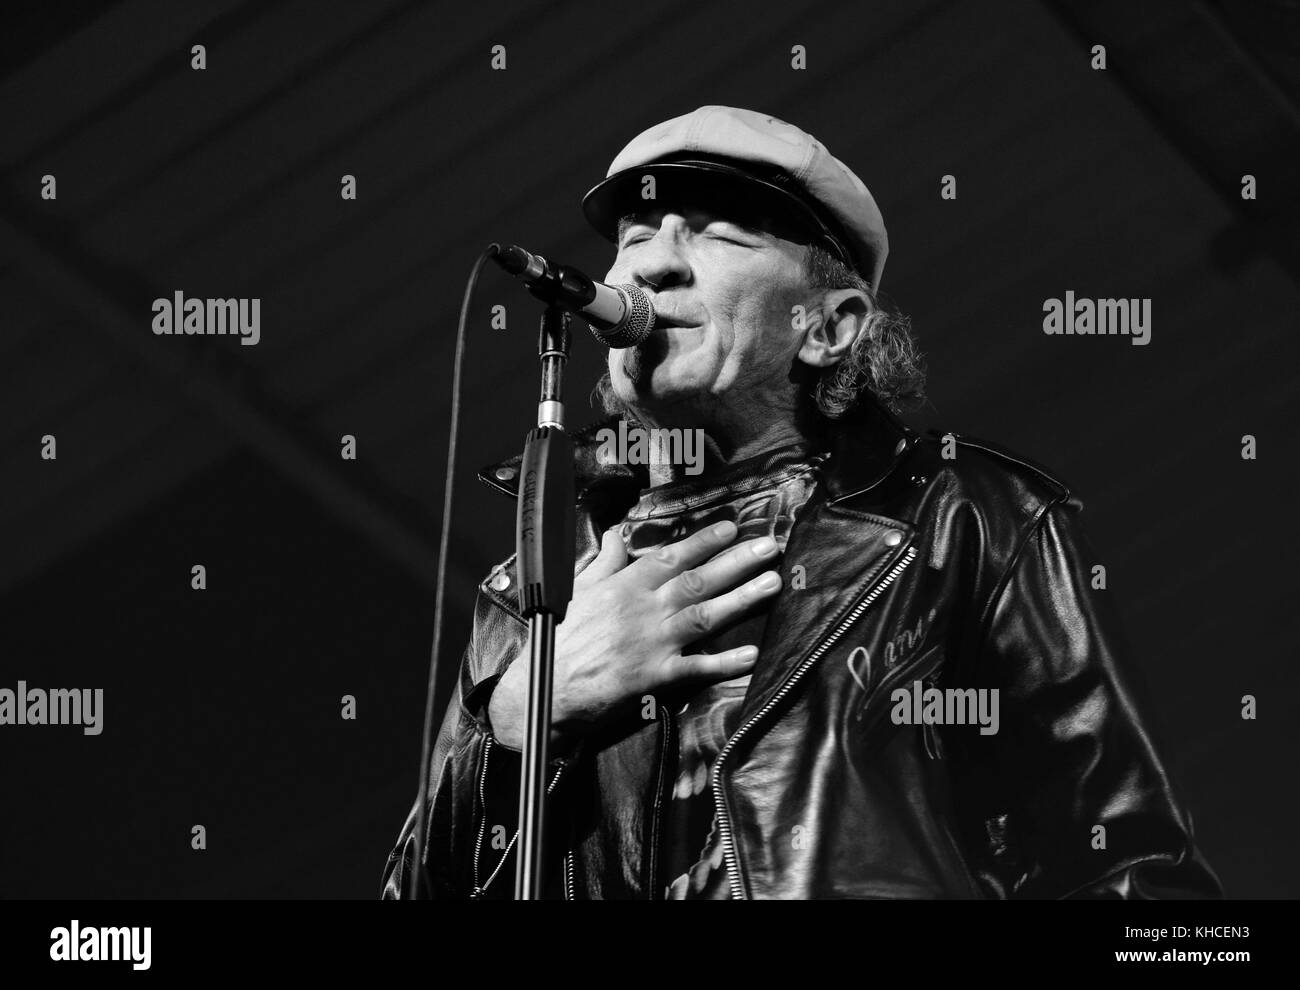 Black and white image of Fee Waybill lead singer with The Tubes performing at the Engine Rooms Southampton, Uk - Stock Image